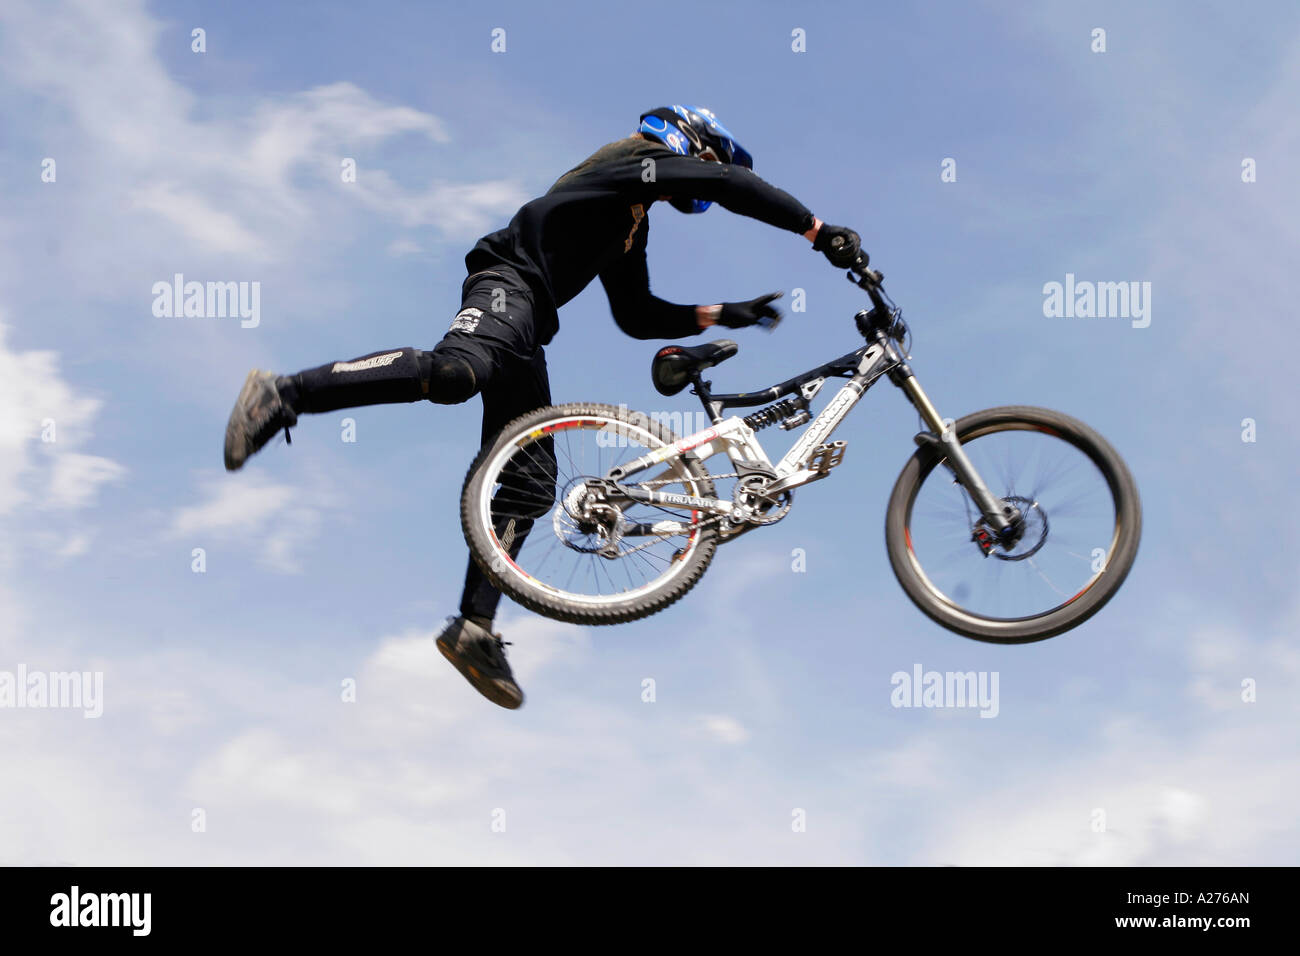 Biker performs tricky jump in the air - Stock Image